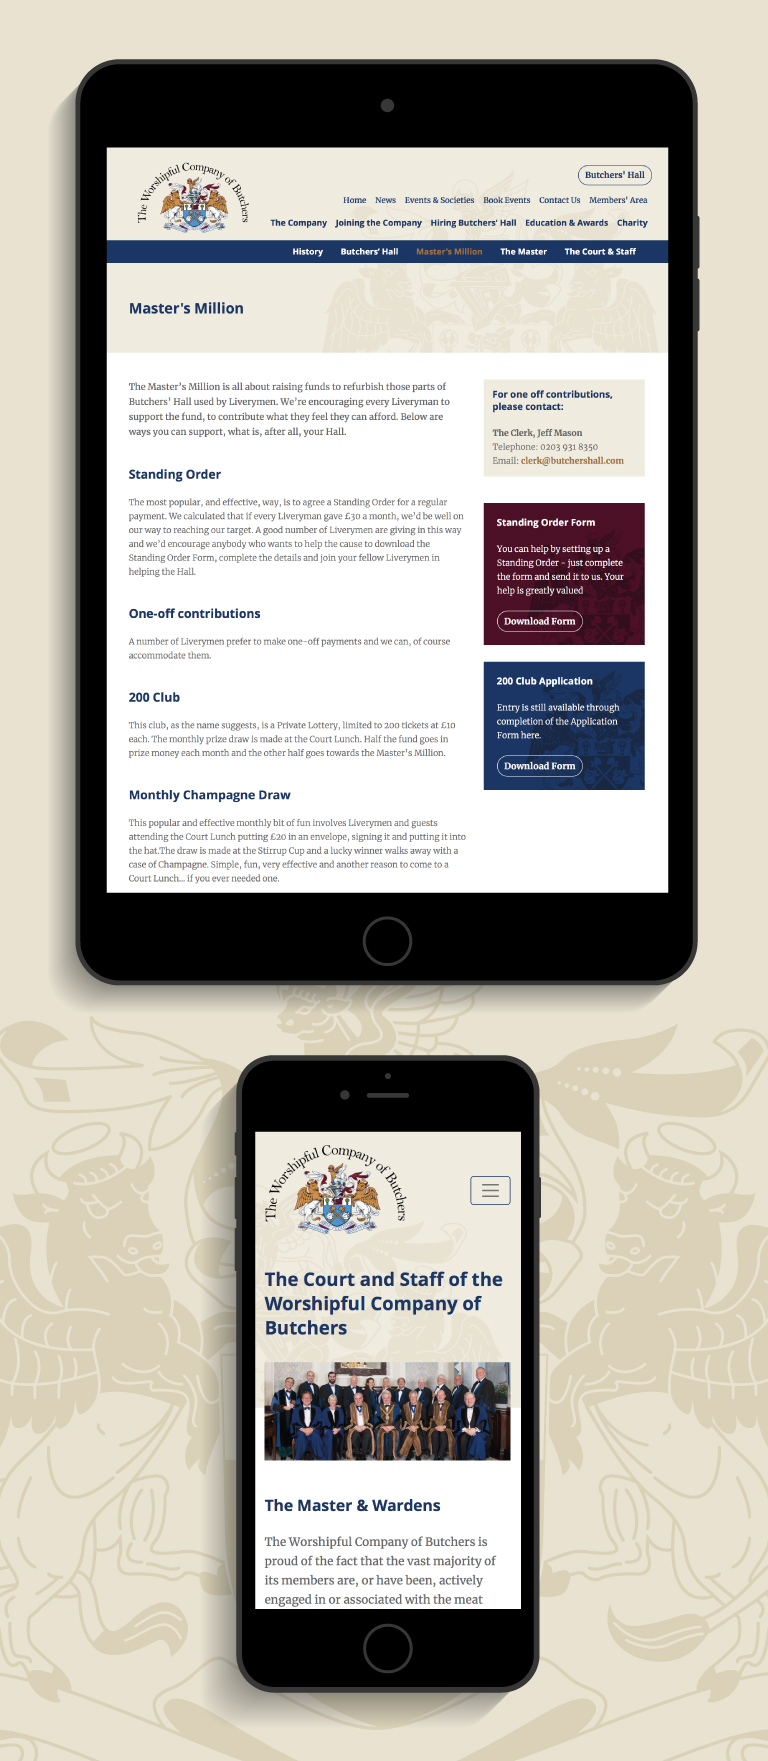 The Worshipful Company of Butchers website on an iPad and iPhone - mobile